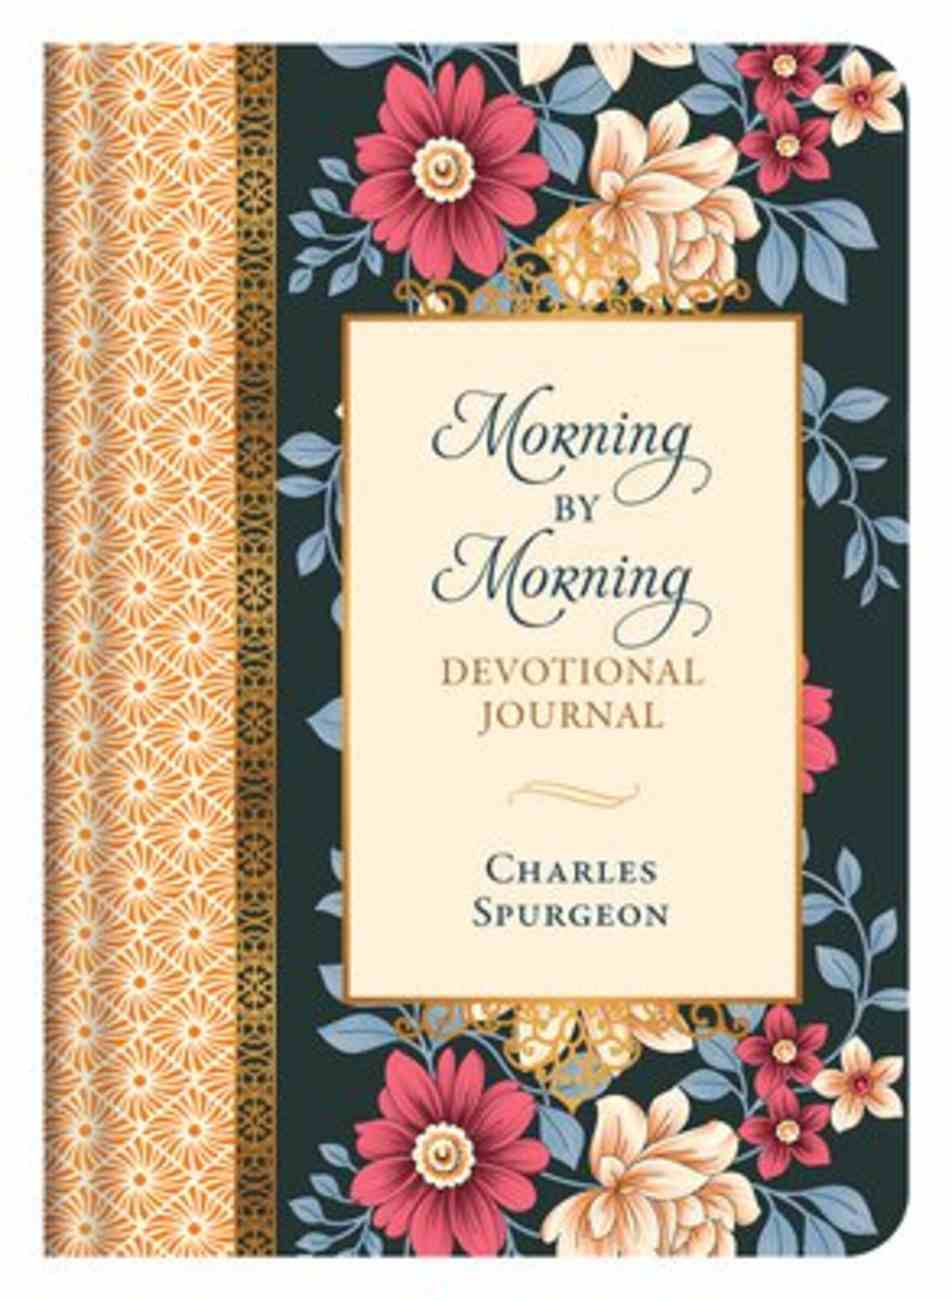 Morning By Morning Devotional Journal: Daily Inspiration From the Beloved Classic Hardback